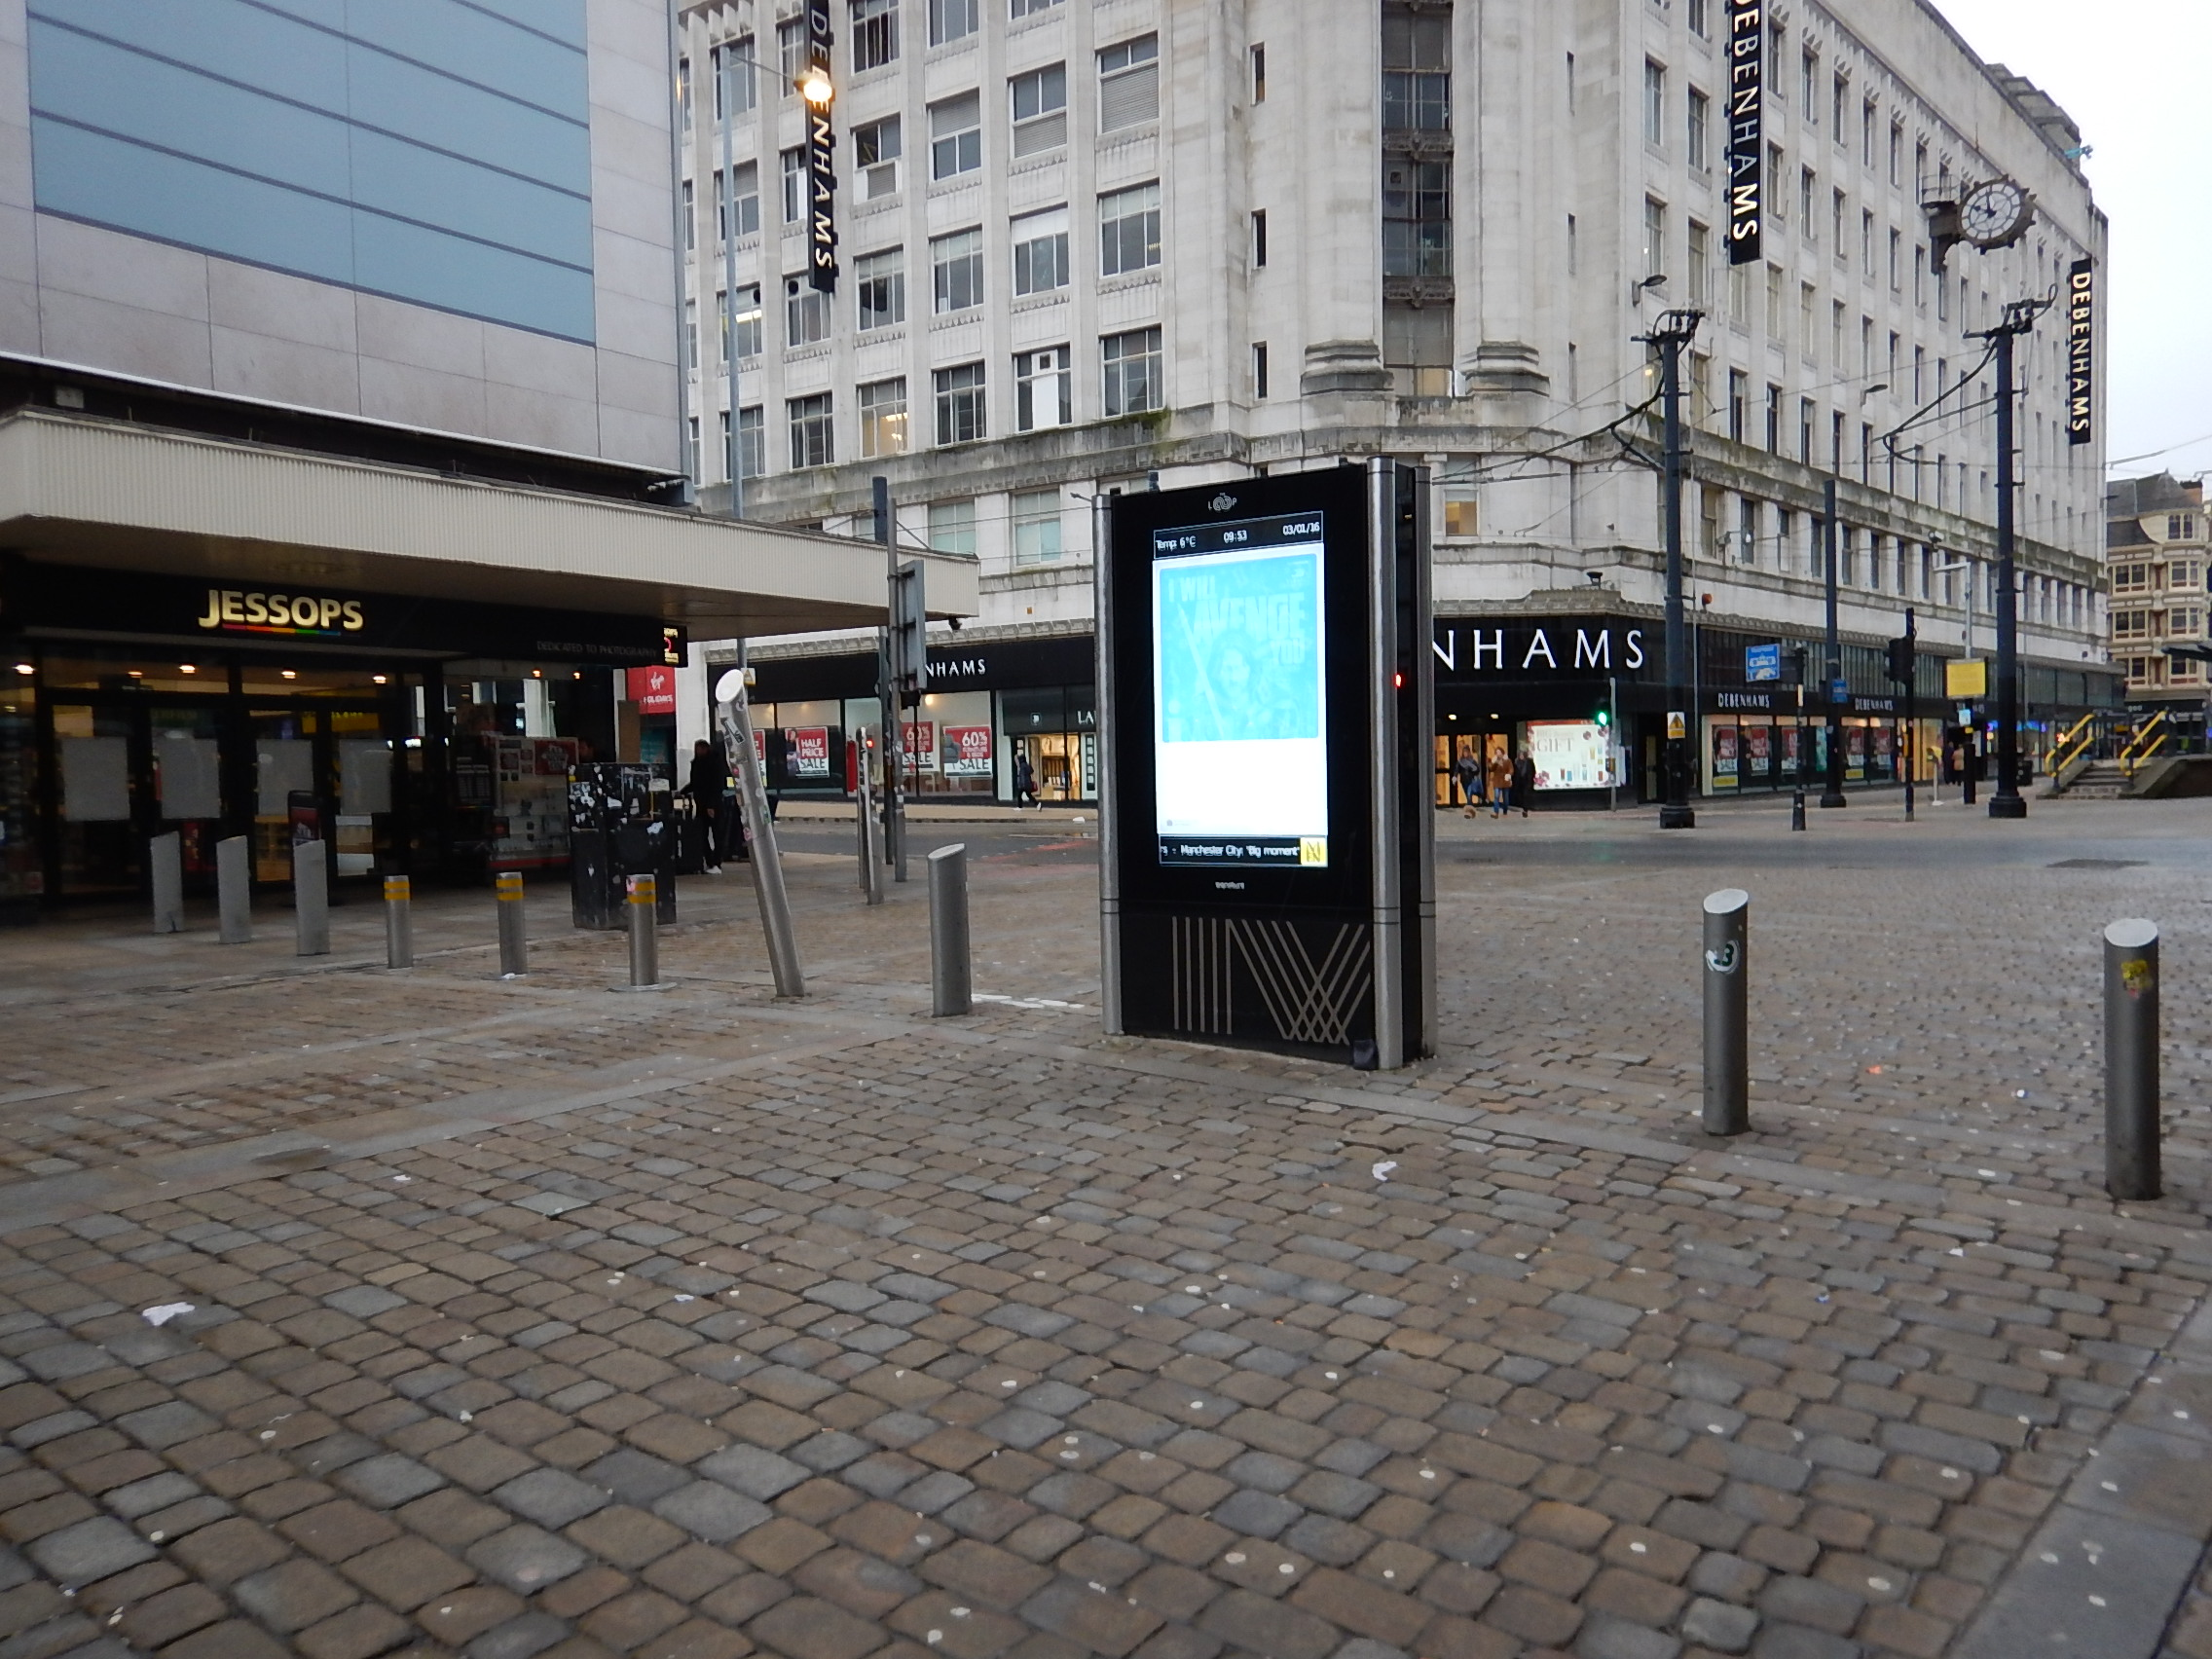 A Design Crime – Manchester's Totally Crap MiGuide « The Anonymous Widower